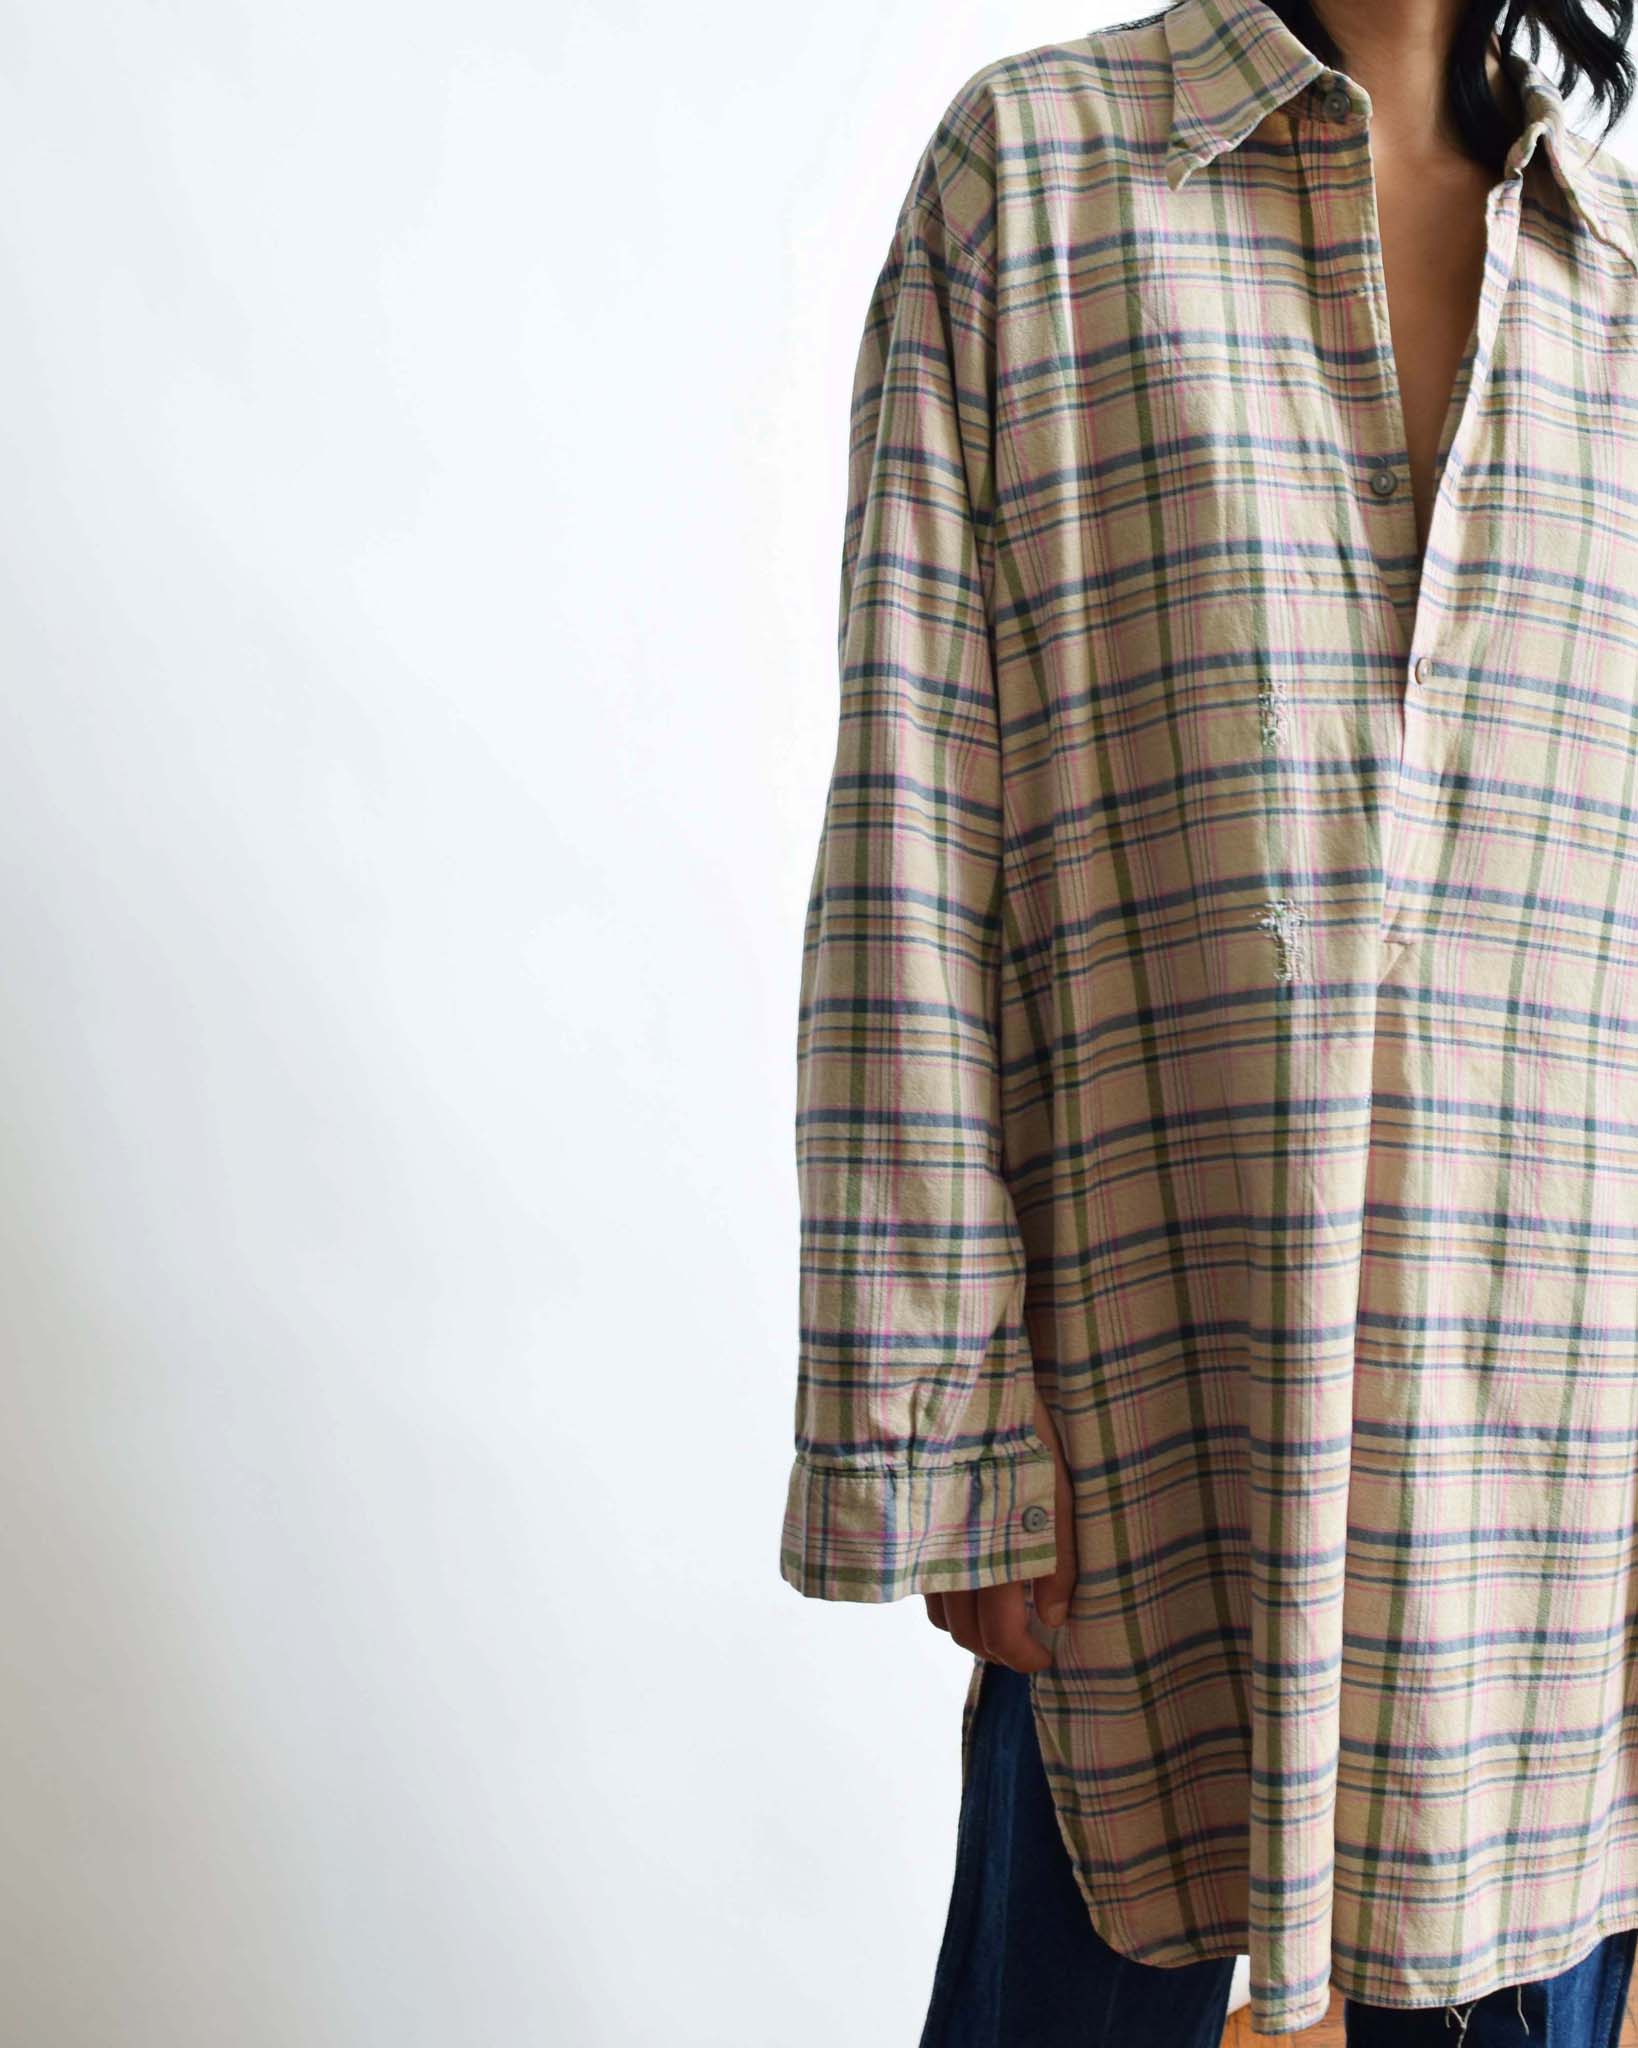 Vintage 1950s Plaid Grandfather Shirt